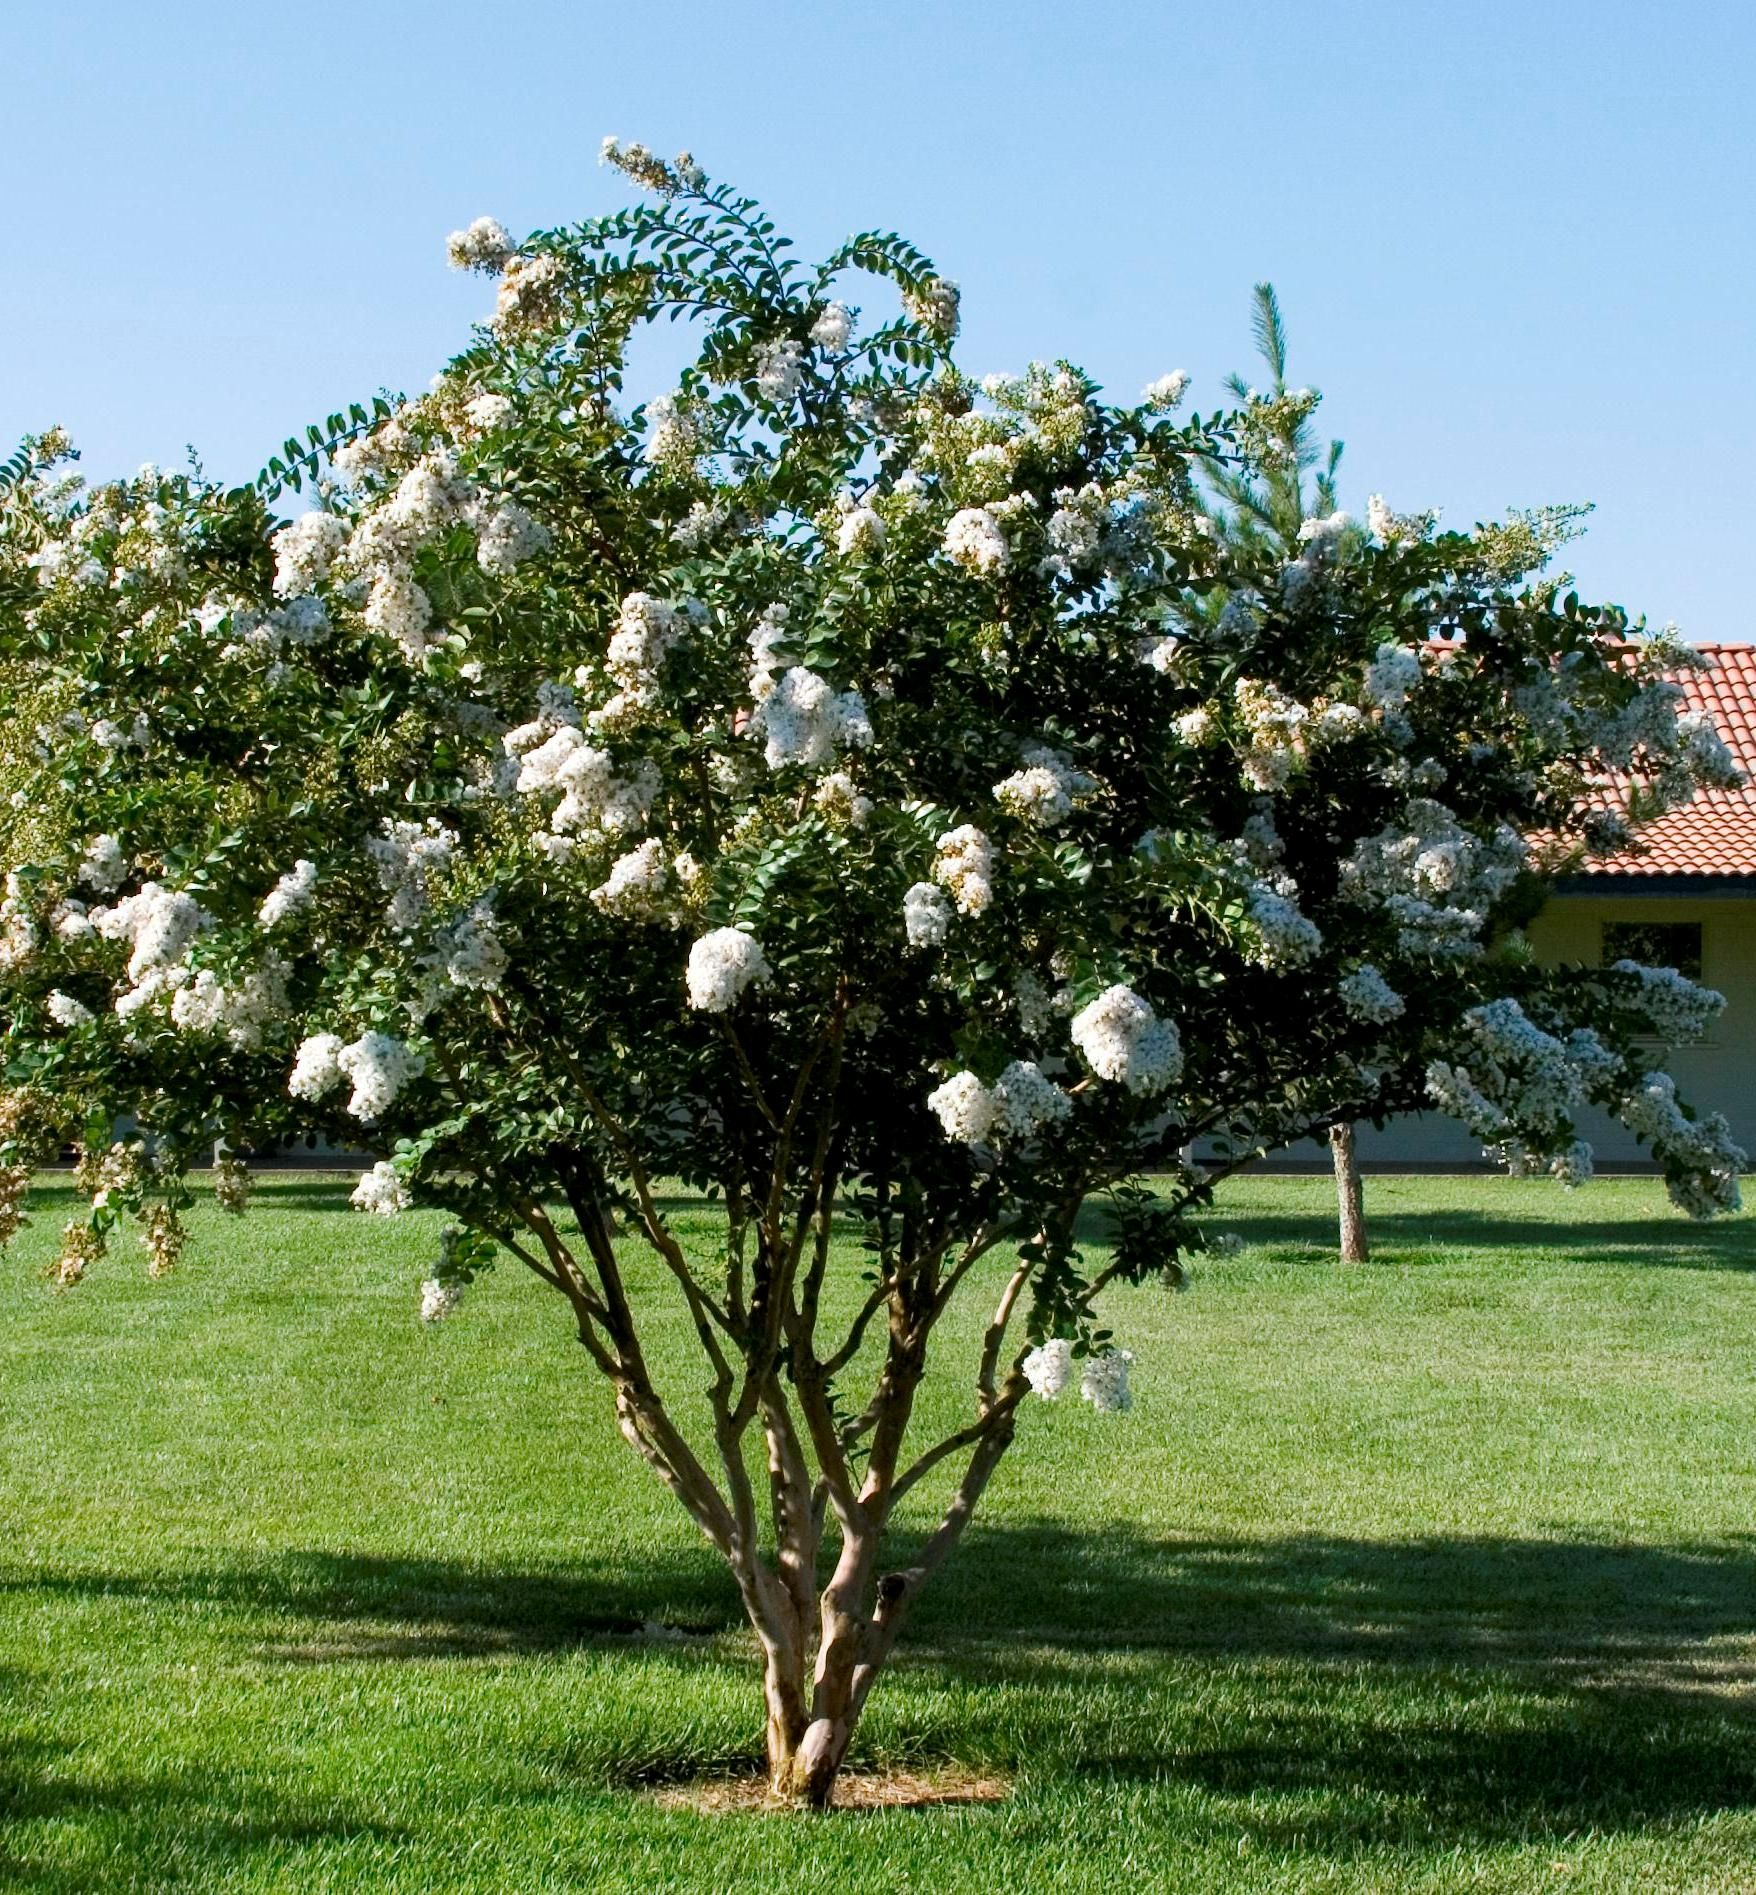 Acora White Crape Myrtle, Georgeous clusters of pure white, crinkled flowers, amazing dwarf crape mrytle that serves as a large shrub or small tree with a weeping form, rich fall color,